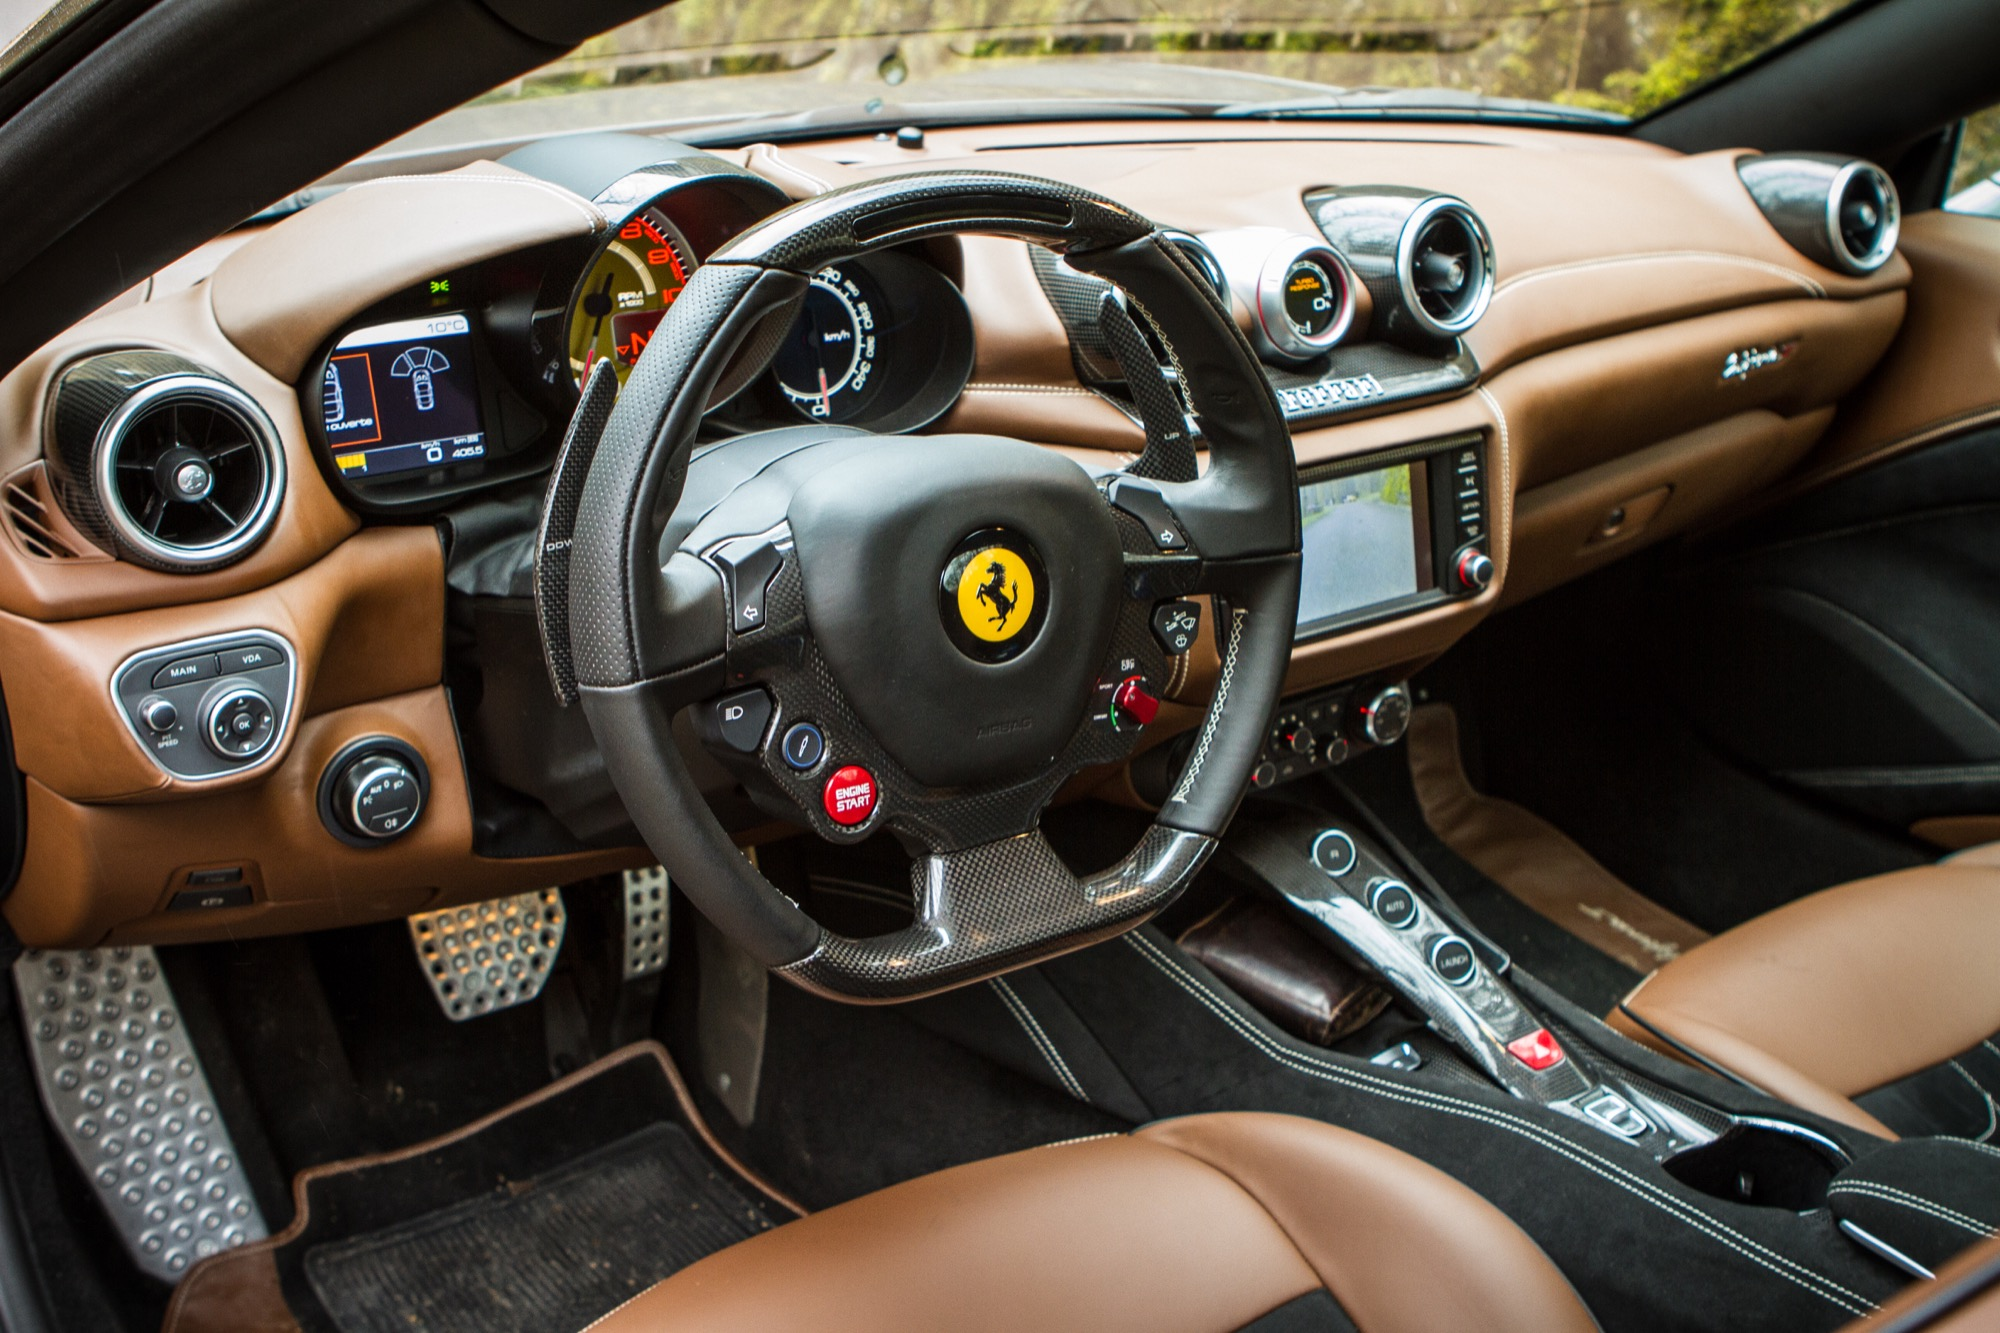 La ferrari california t l 39 essai sur les routes burgondes for Ferrari california t interieur